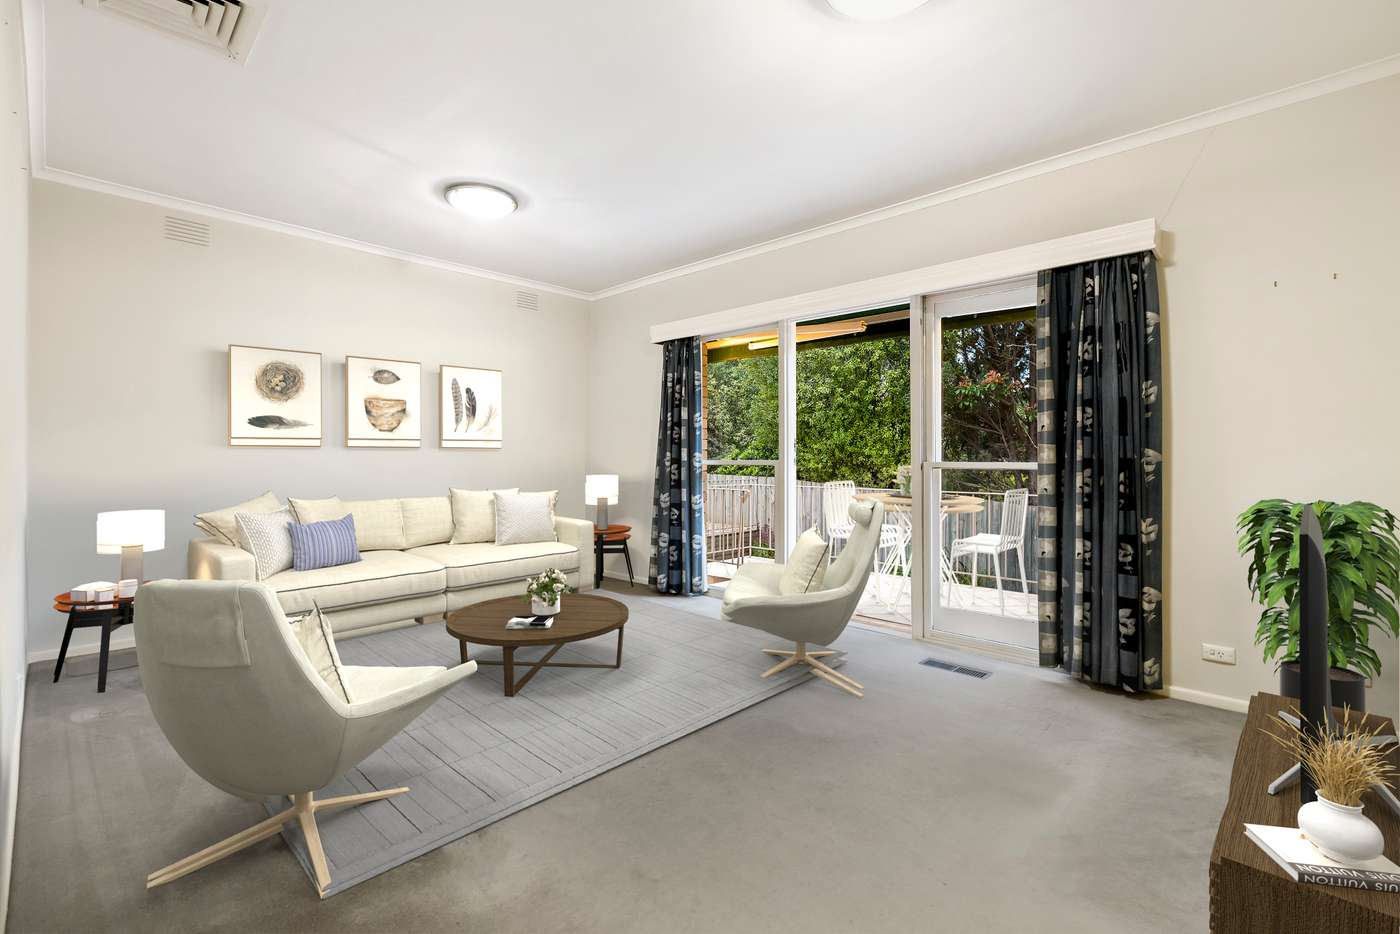 Sixth view of Homely house listing, 22 Central Avenue, Balwyn North VIC 3104